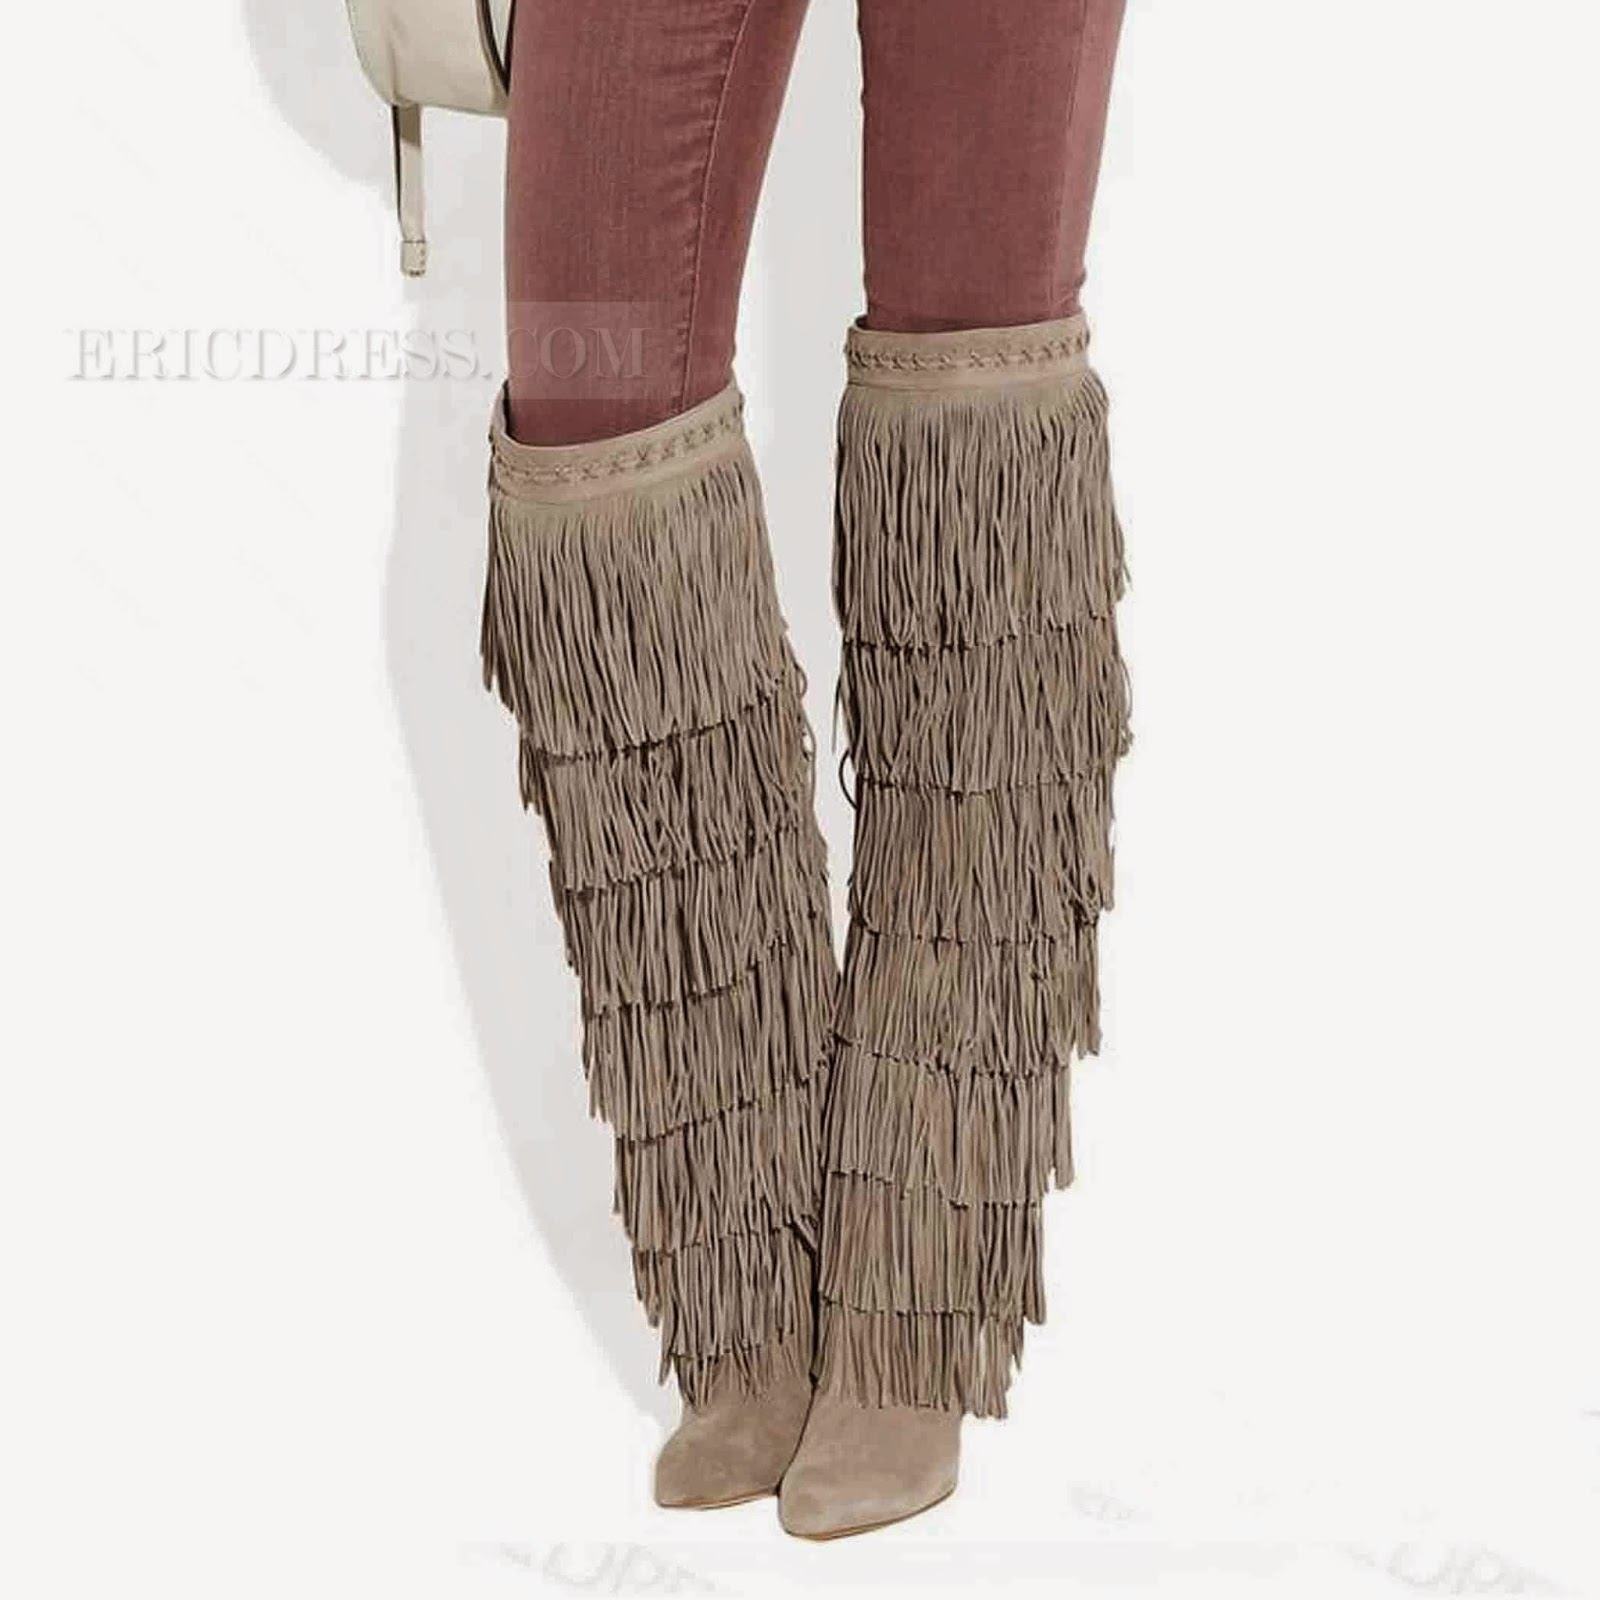 http://www.ericdress.com/product/Brilliant-Stileto-Heels-Kid-Suede-Women-Boots-10512771.html